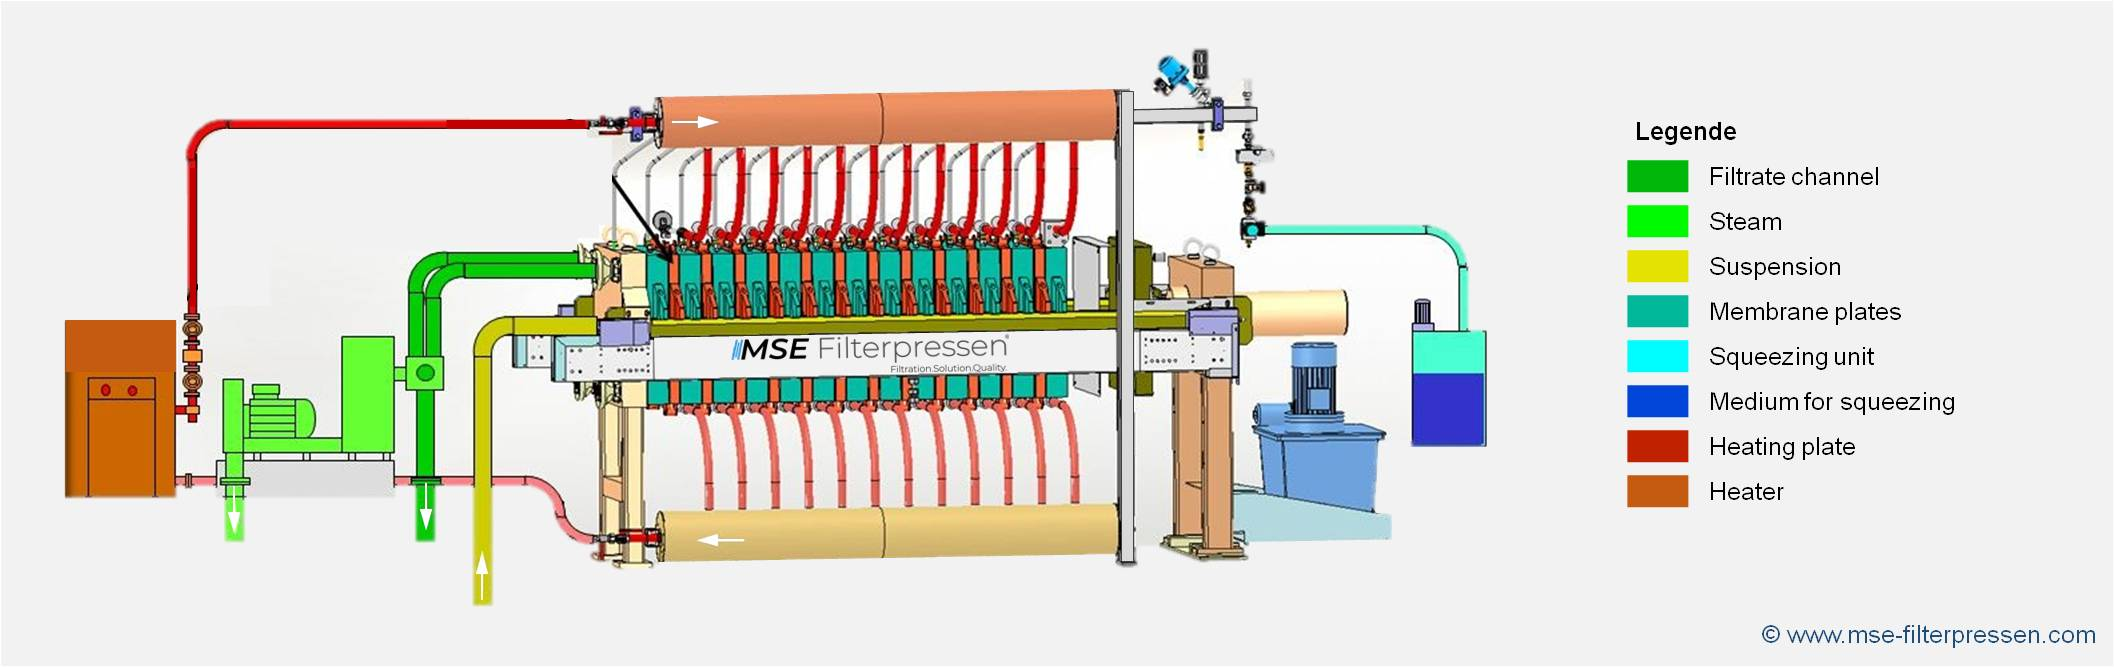 Construction and function of the filter press with the thermal-cakedrying - Hot-filter press